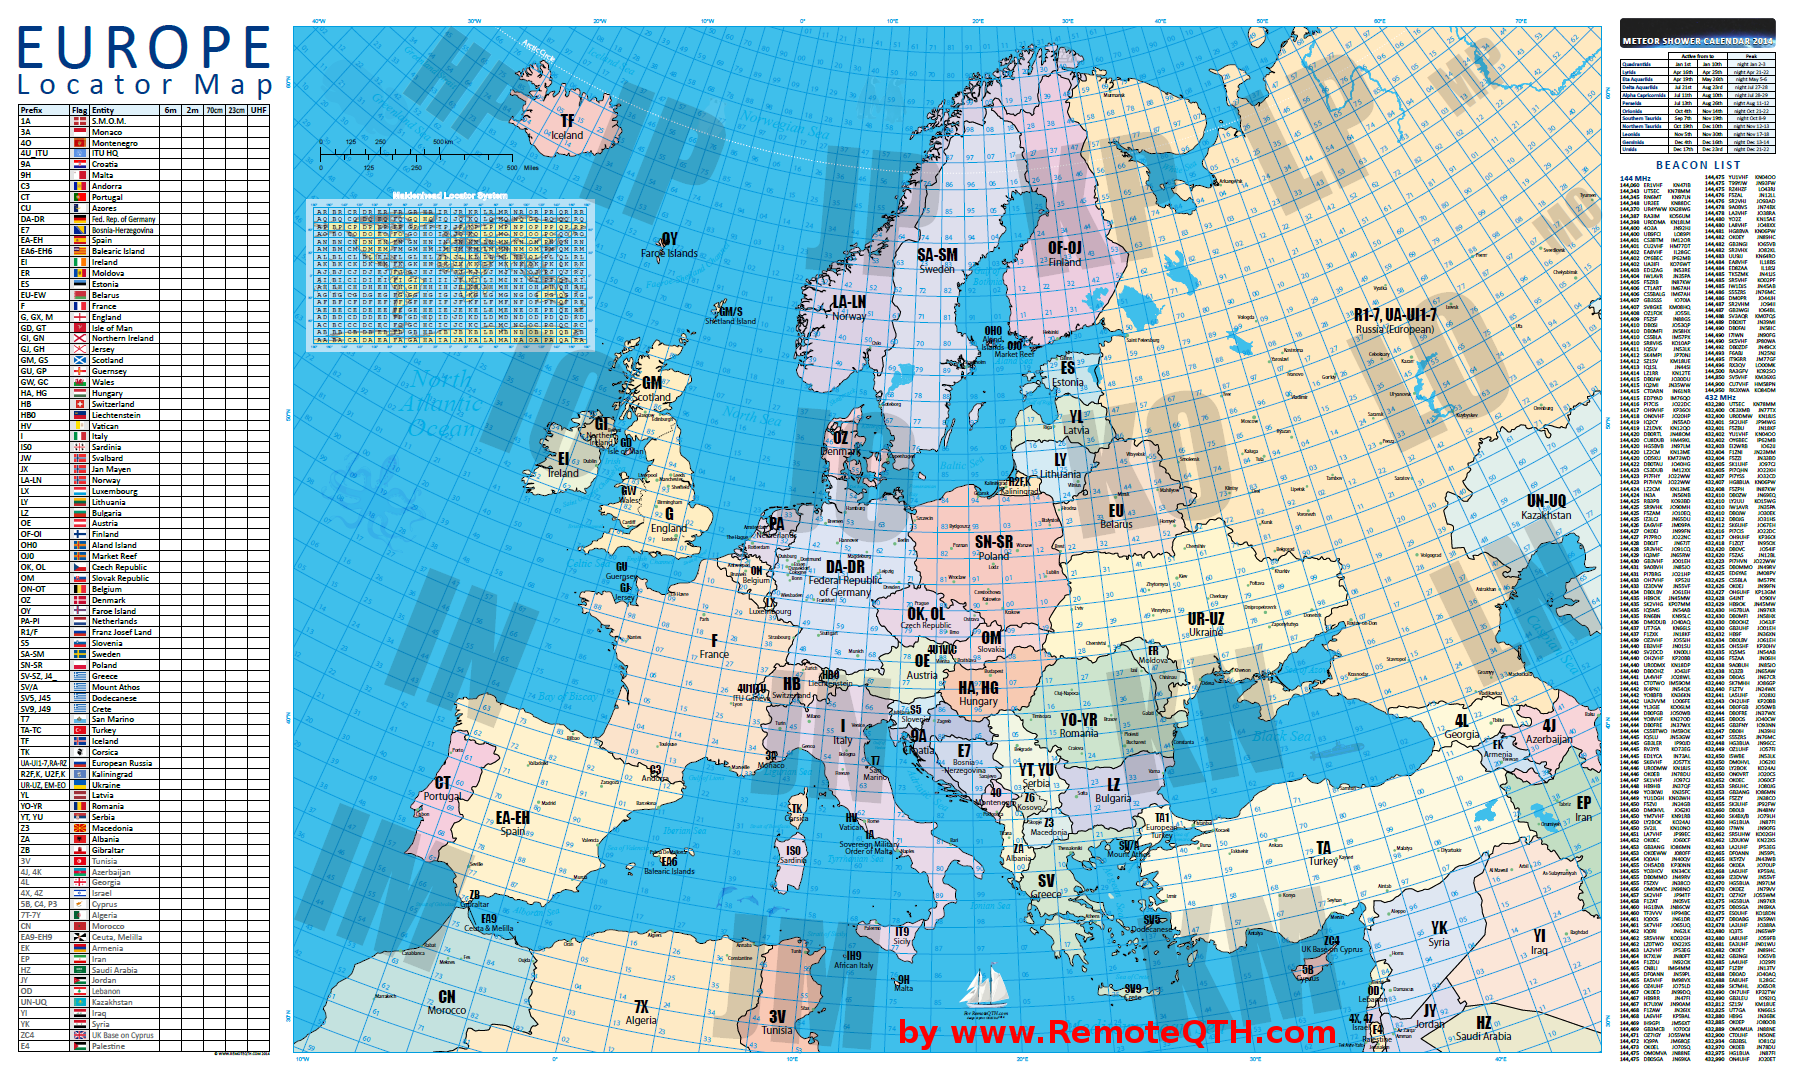 Europe locator map europe locator vhf uhf qth map gumiabroncs Image collections